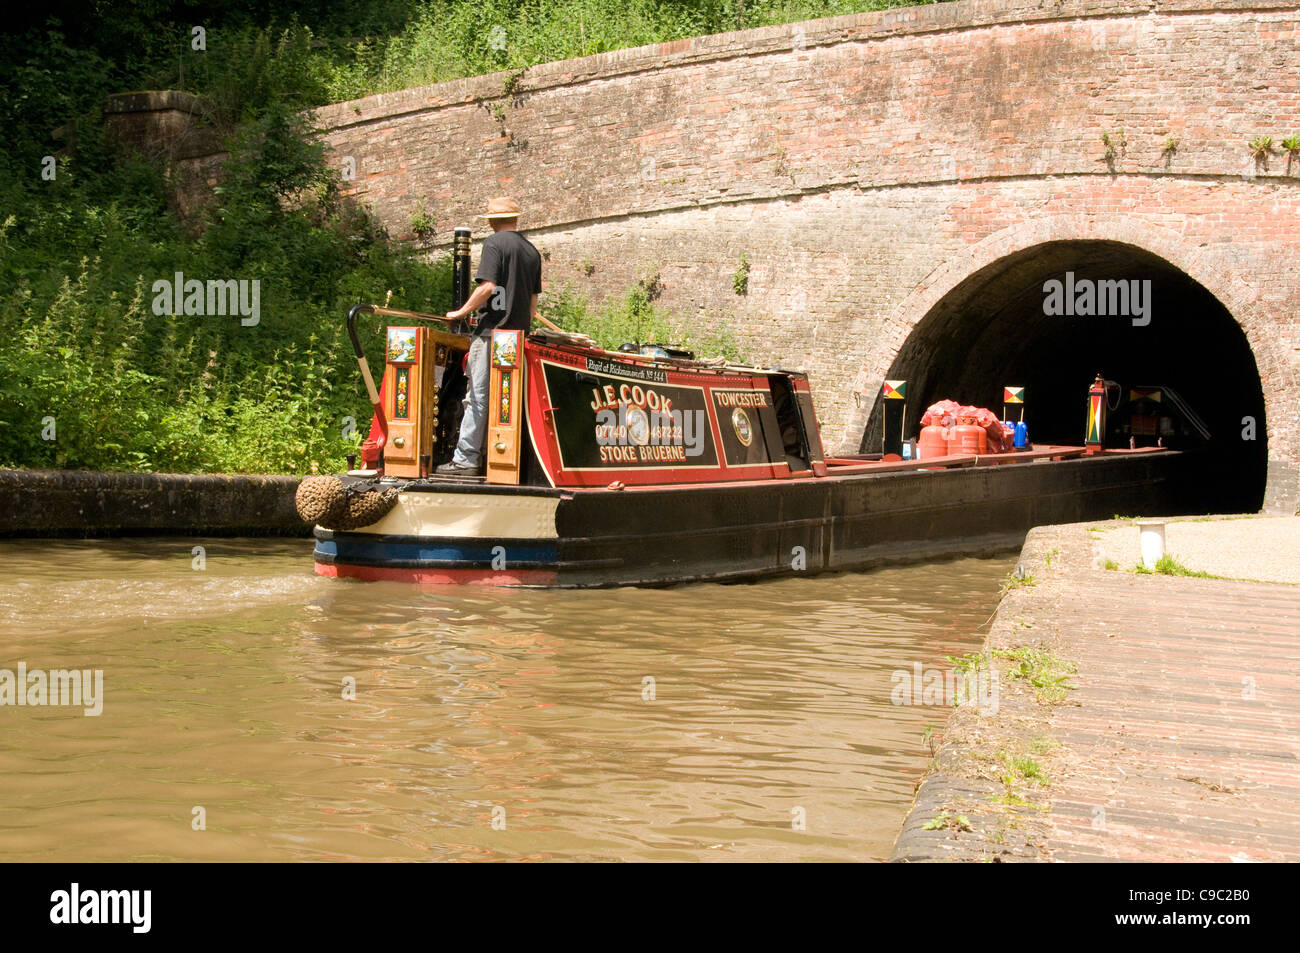 A traditional working narrowboat entering Blisworth Tunnel - Stock Image